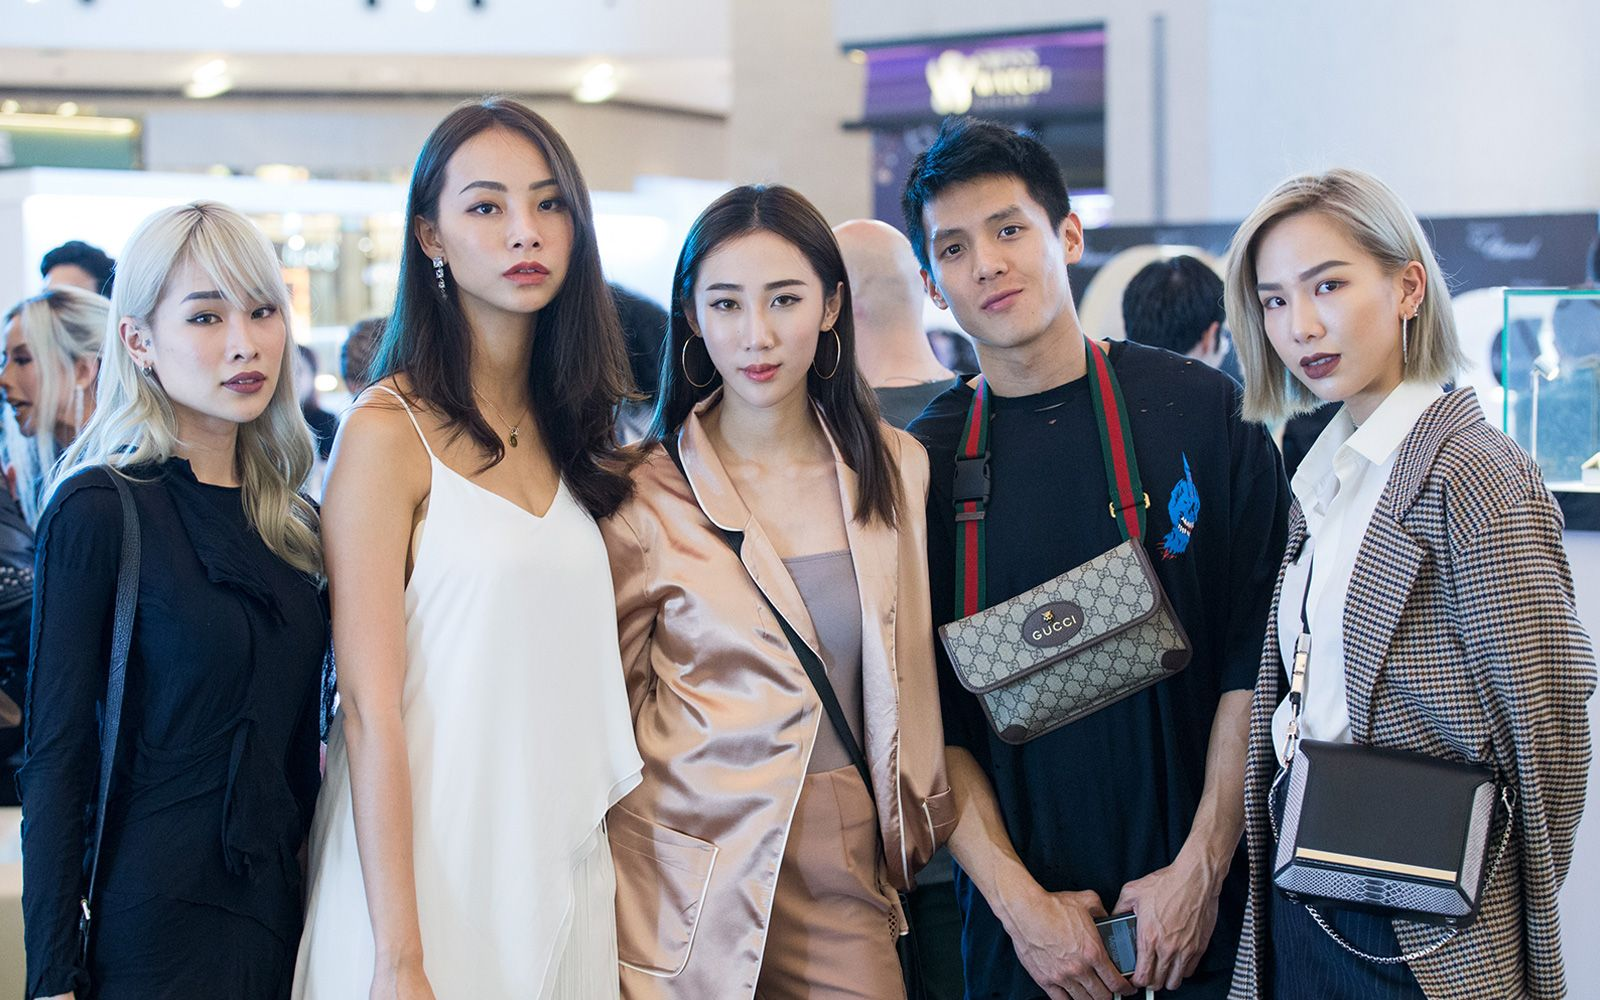 Cherrie Mun, Nana Law, Daphne Tan, Khye Fuie and Ashley Lau